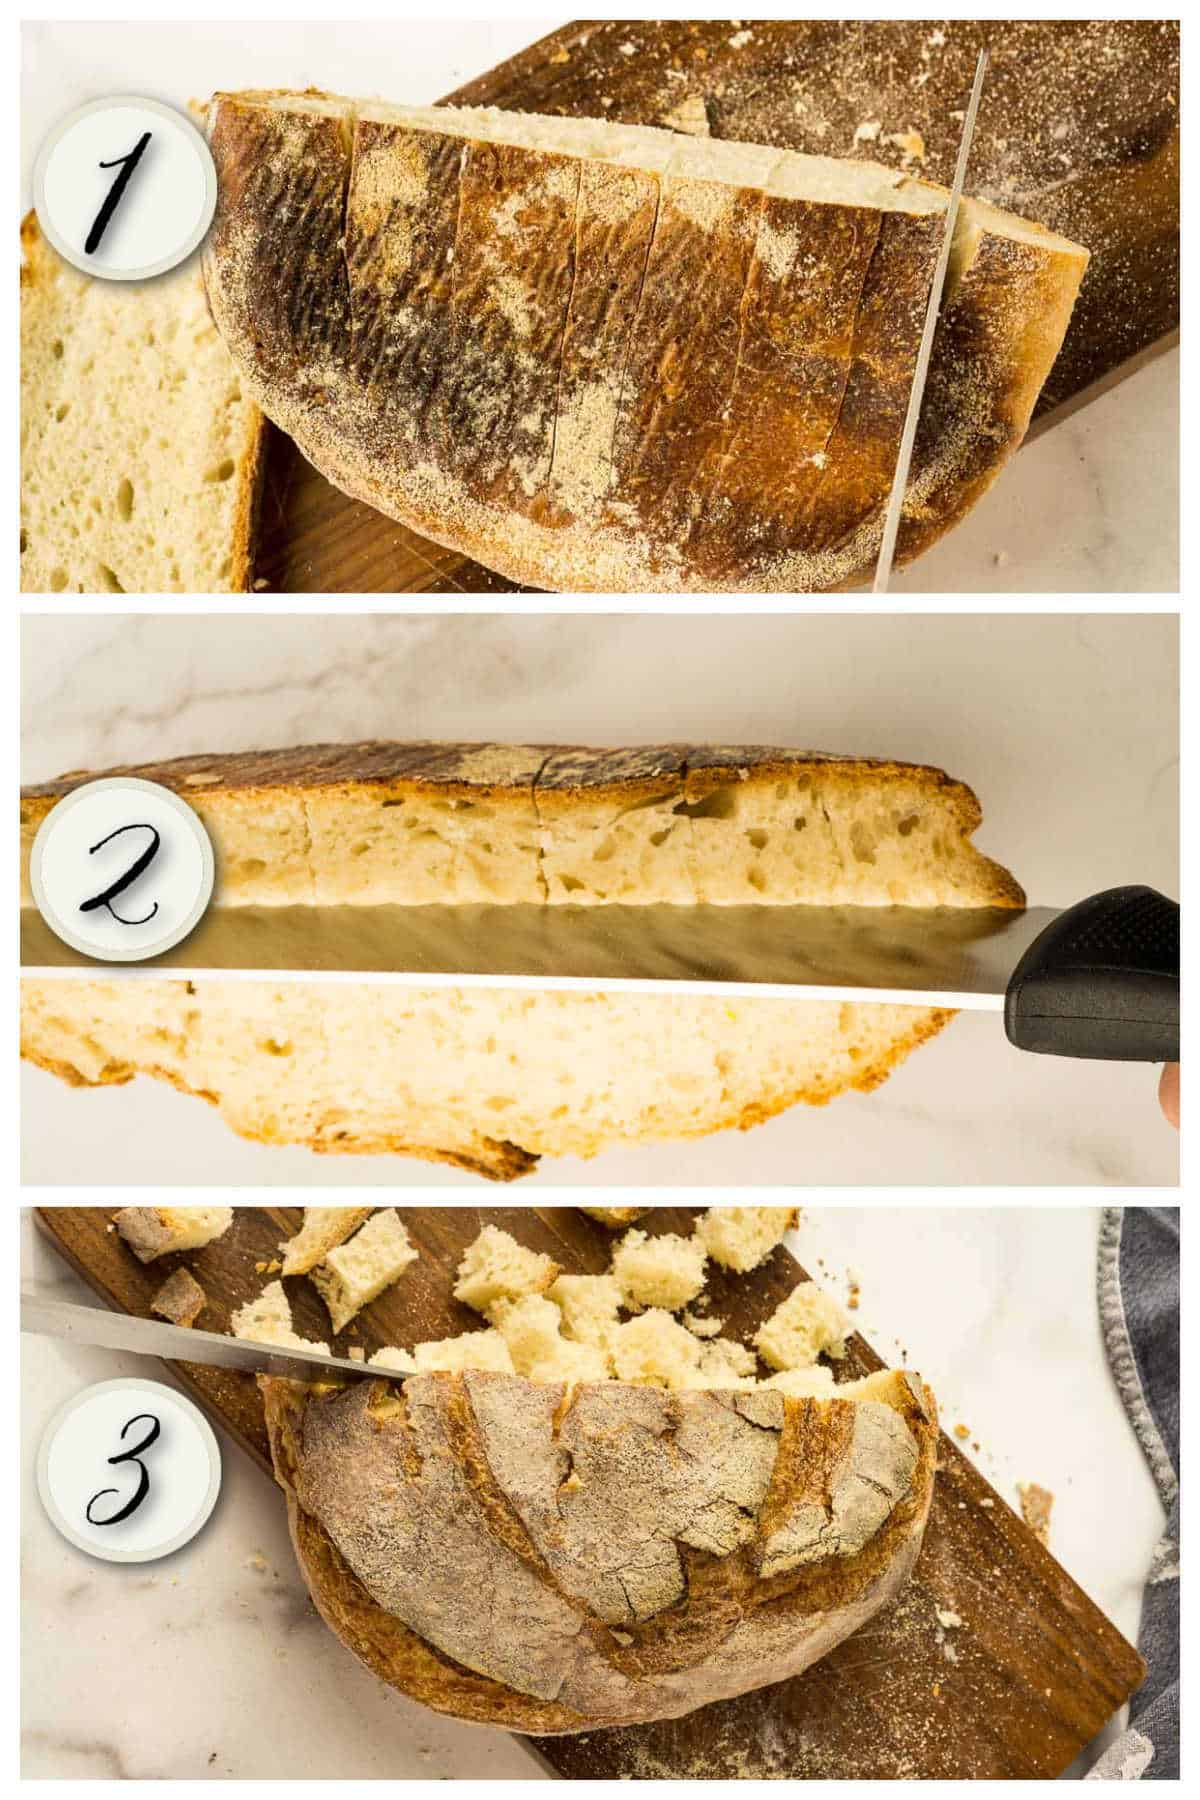 3 steep process of cutting sourdough bread into cubes quickly